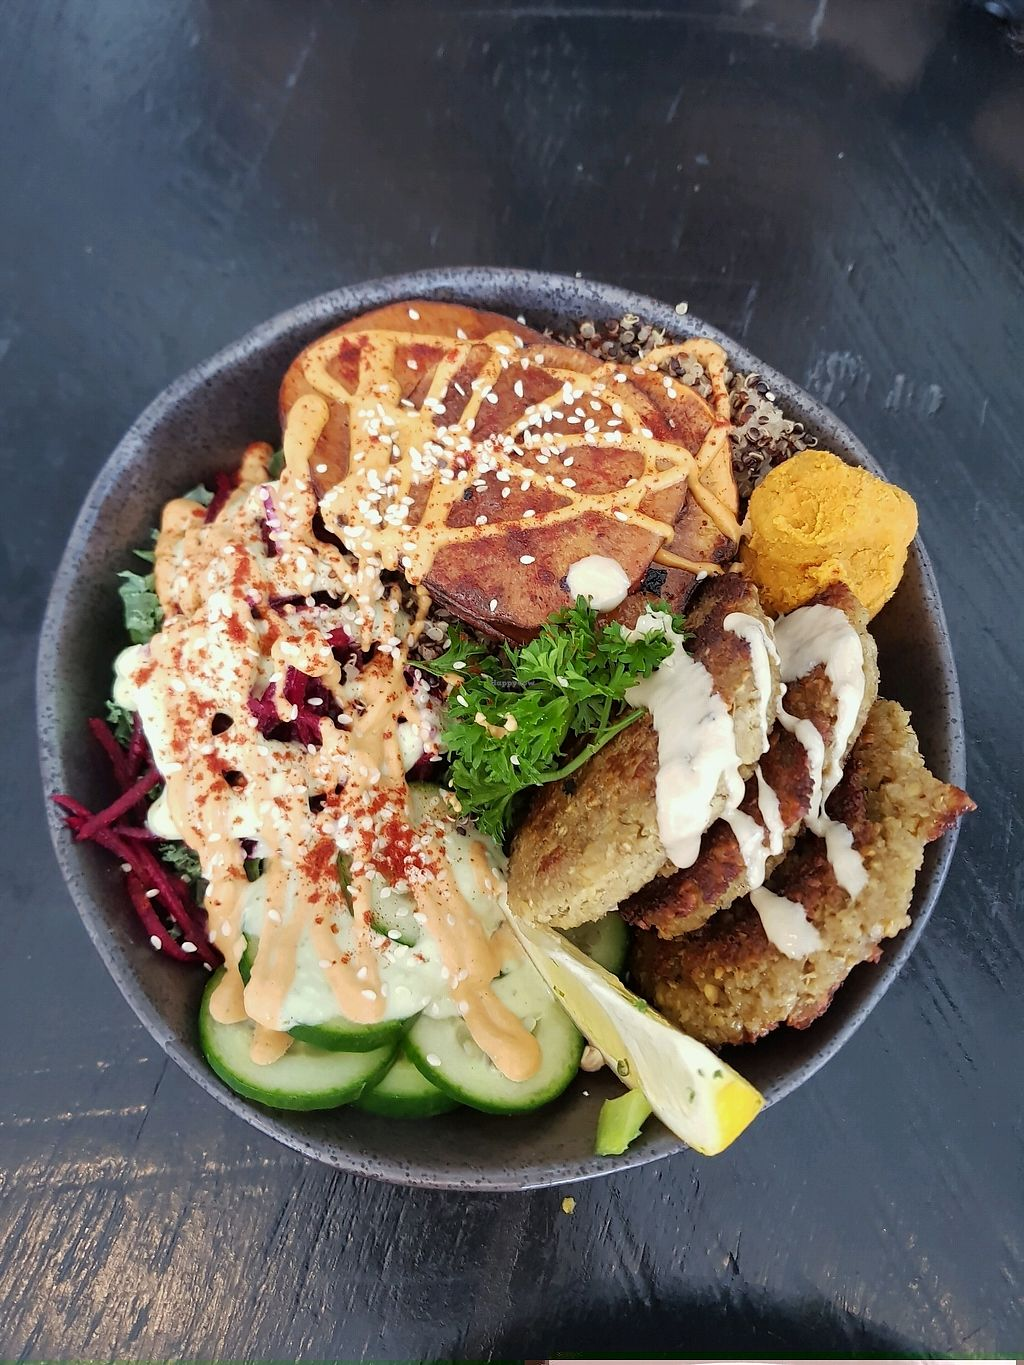 """Photo of Sozo Cafe  by <a href=""""/members/profile/MoniqueElouise"""">MoniqueElouise</a> <br/>Falafel Plate  <br/> October 8, 2017  - <a href='/contact/abuse/image/84435/313011'>Report</a>"""